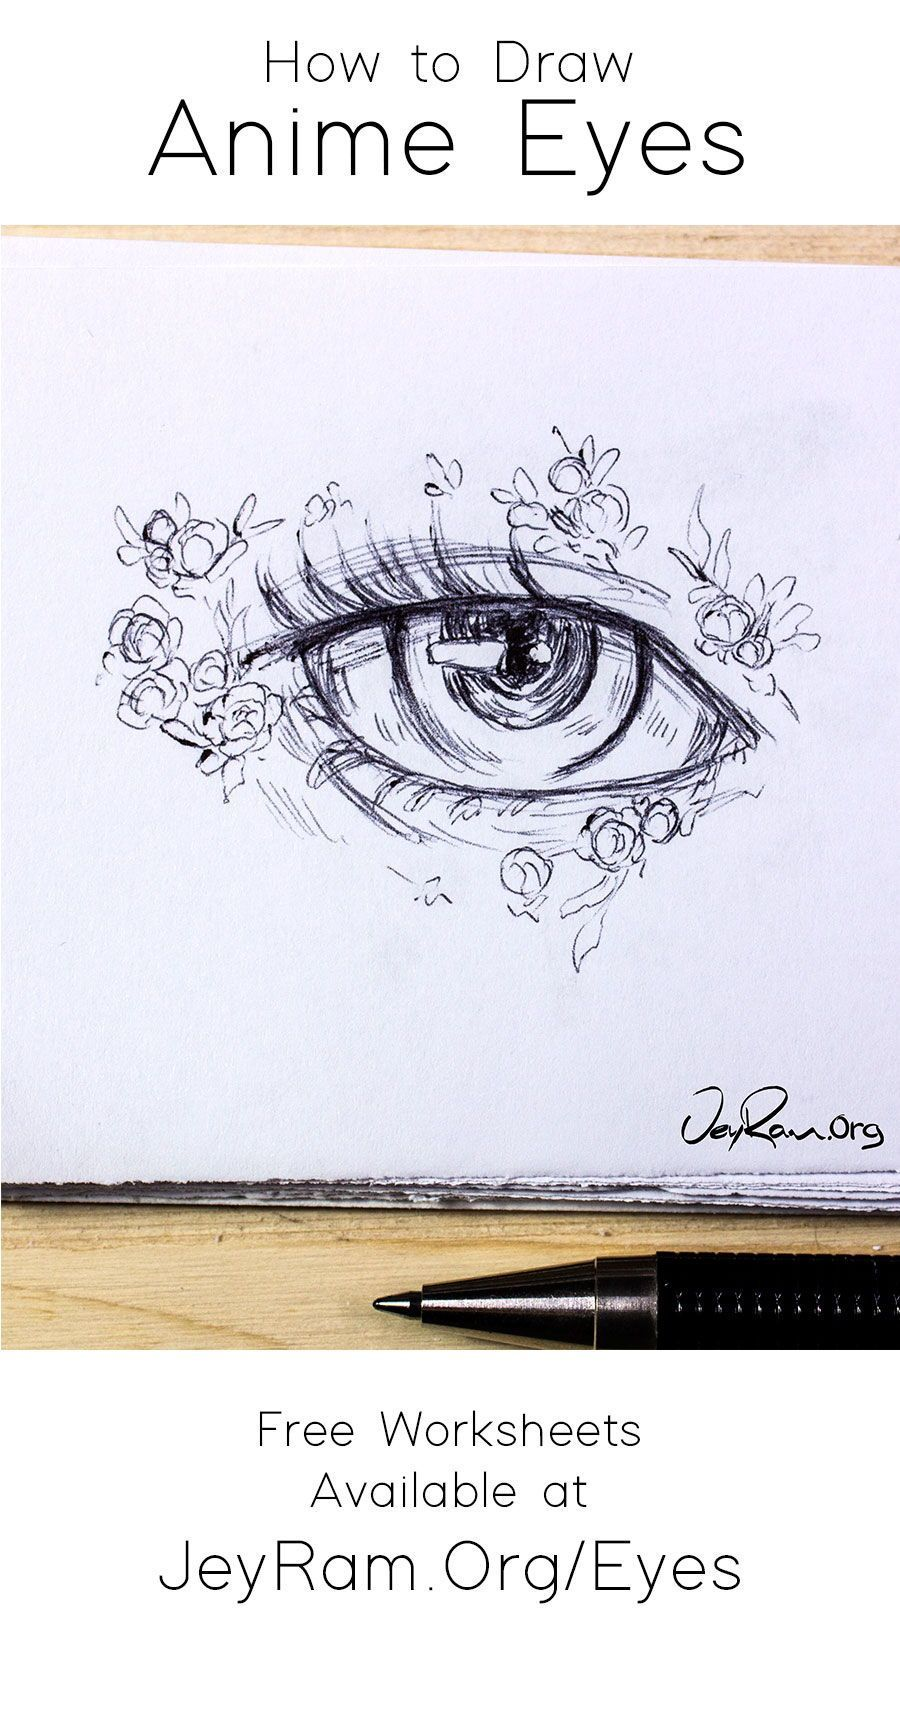 How To Draw Female Anime Eyes Step By Step For Beginners Pdf By Jeyram Learn How To Draw The Beautiful Female Anime Female Anime Eyes How To Draw Anime Eyes